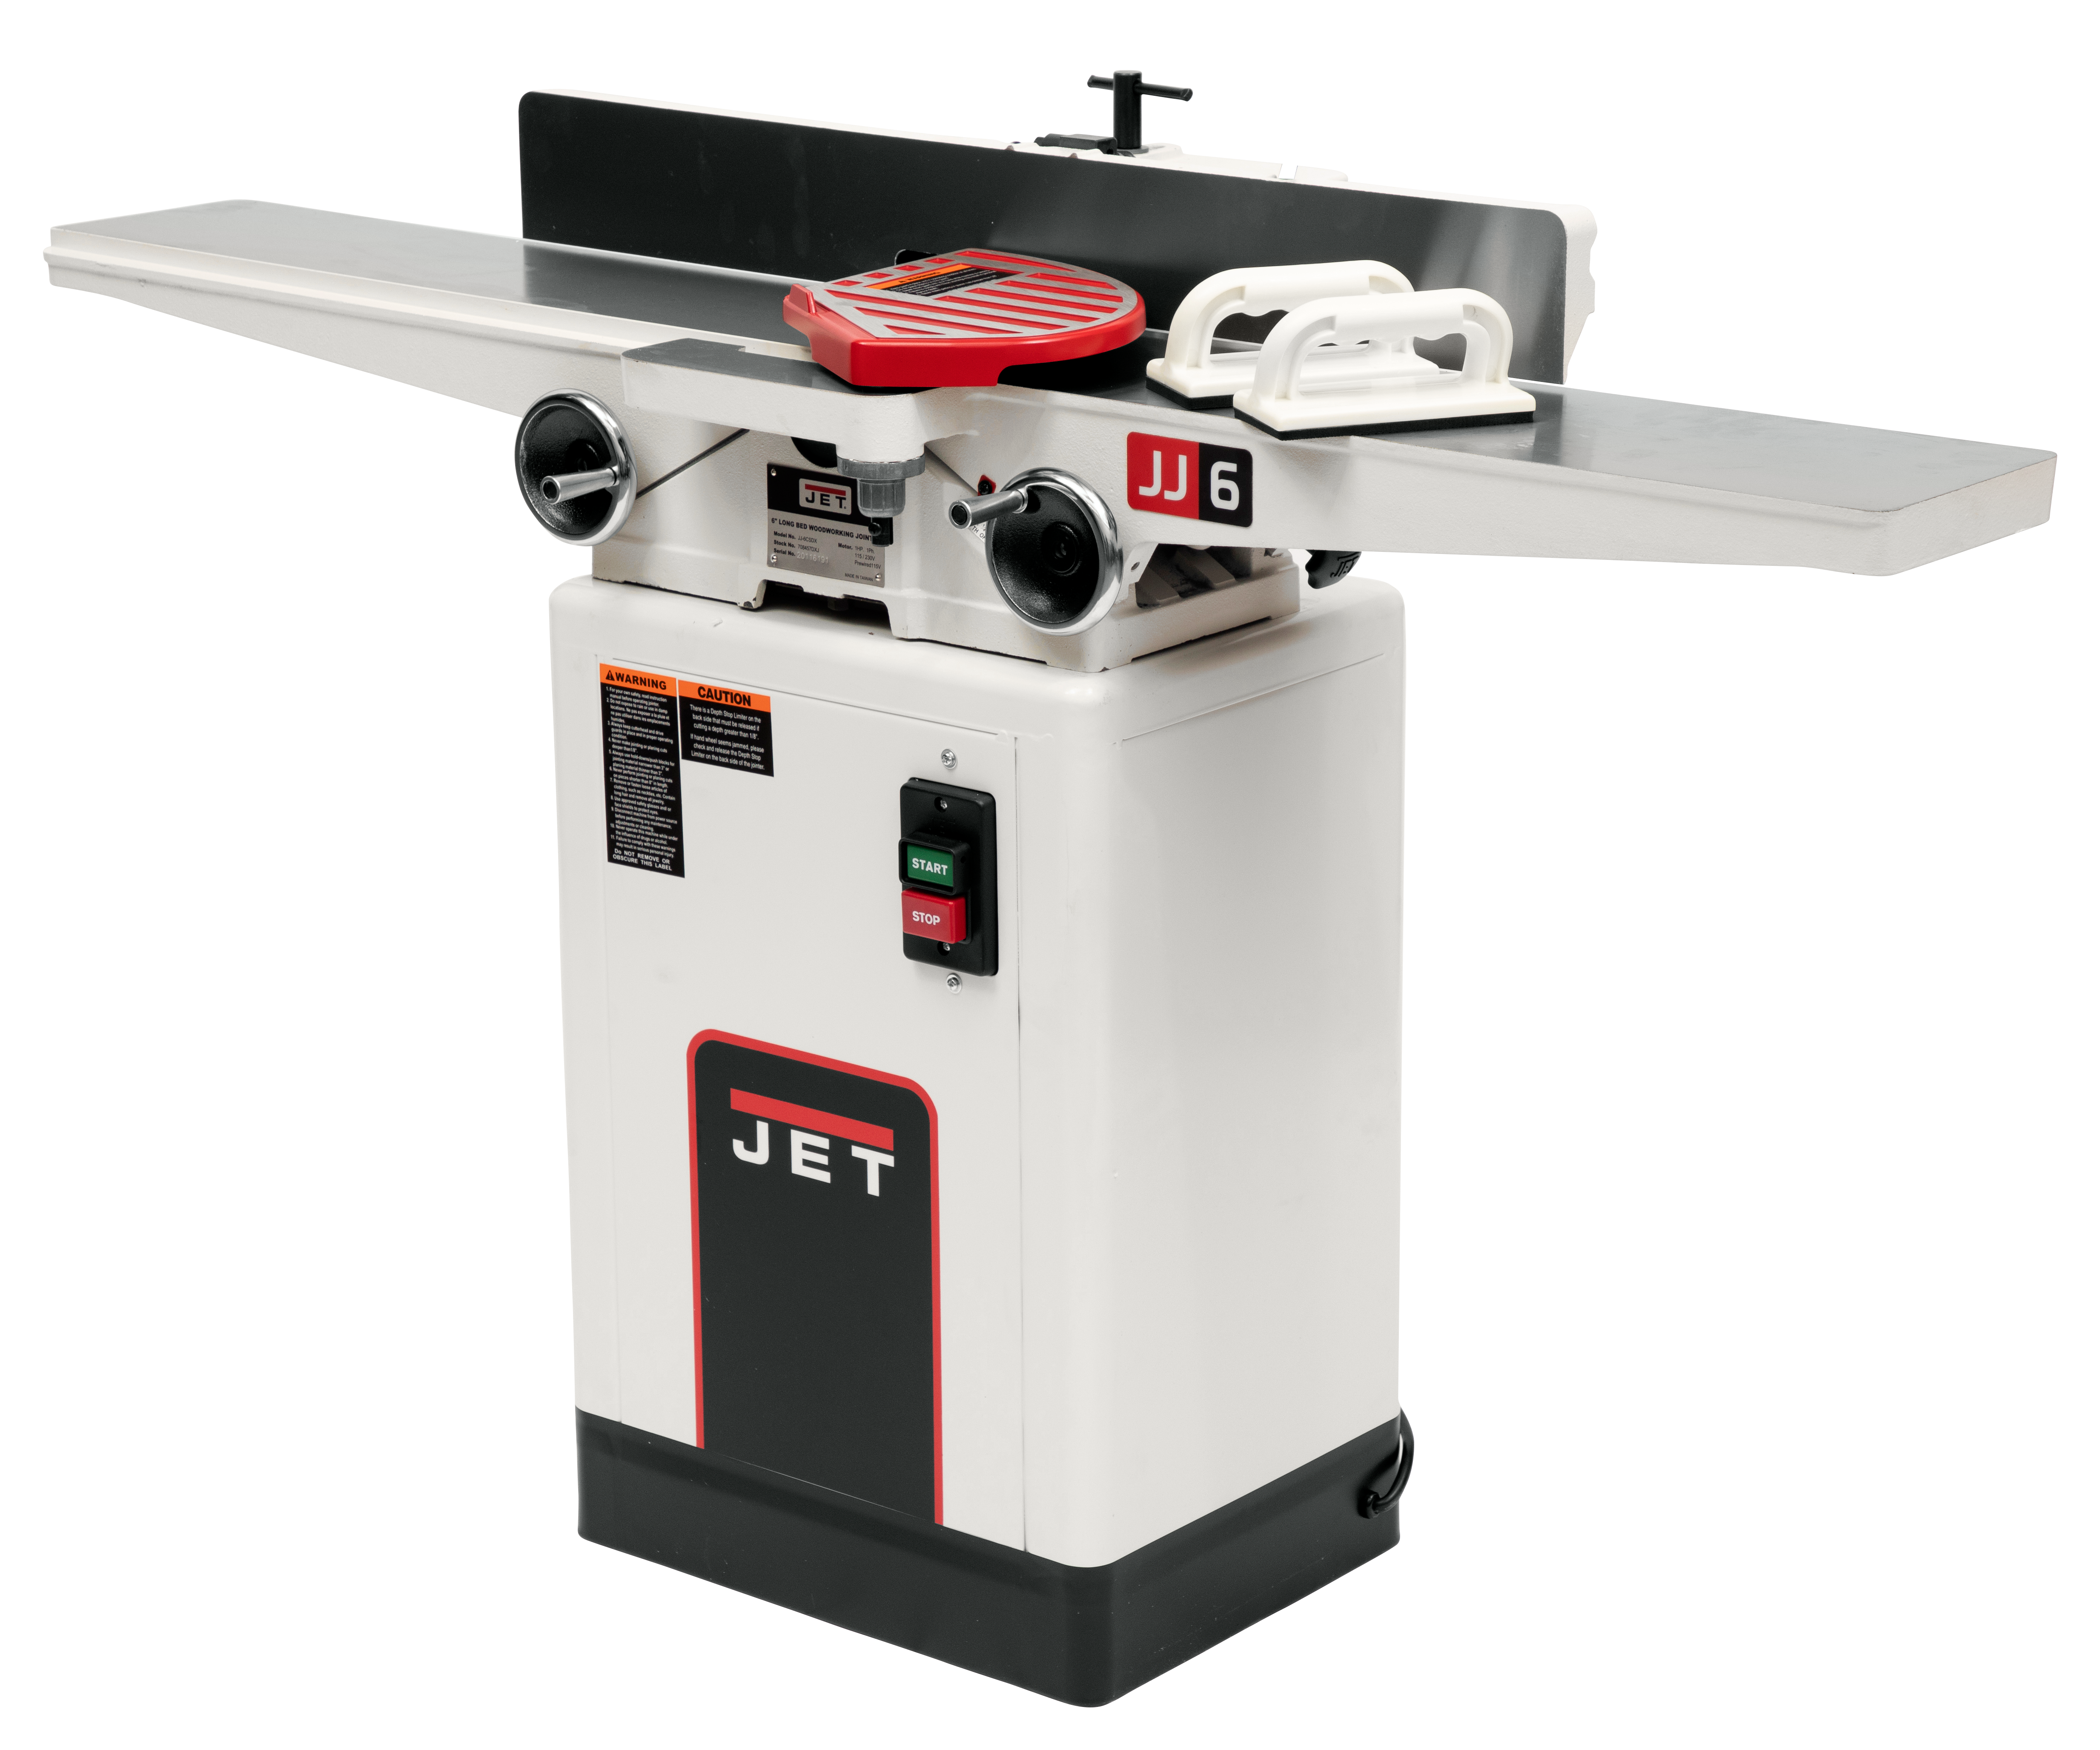 """JJ-6CSDX, 6"""" Deluxe Jointer with QS Knives"""